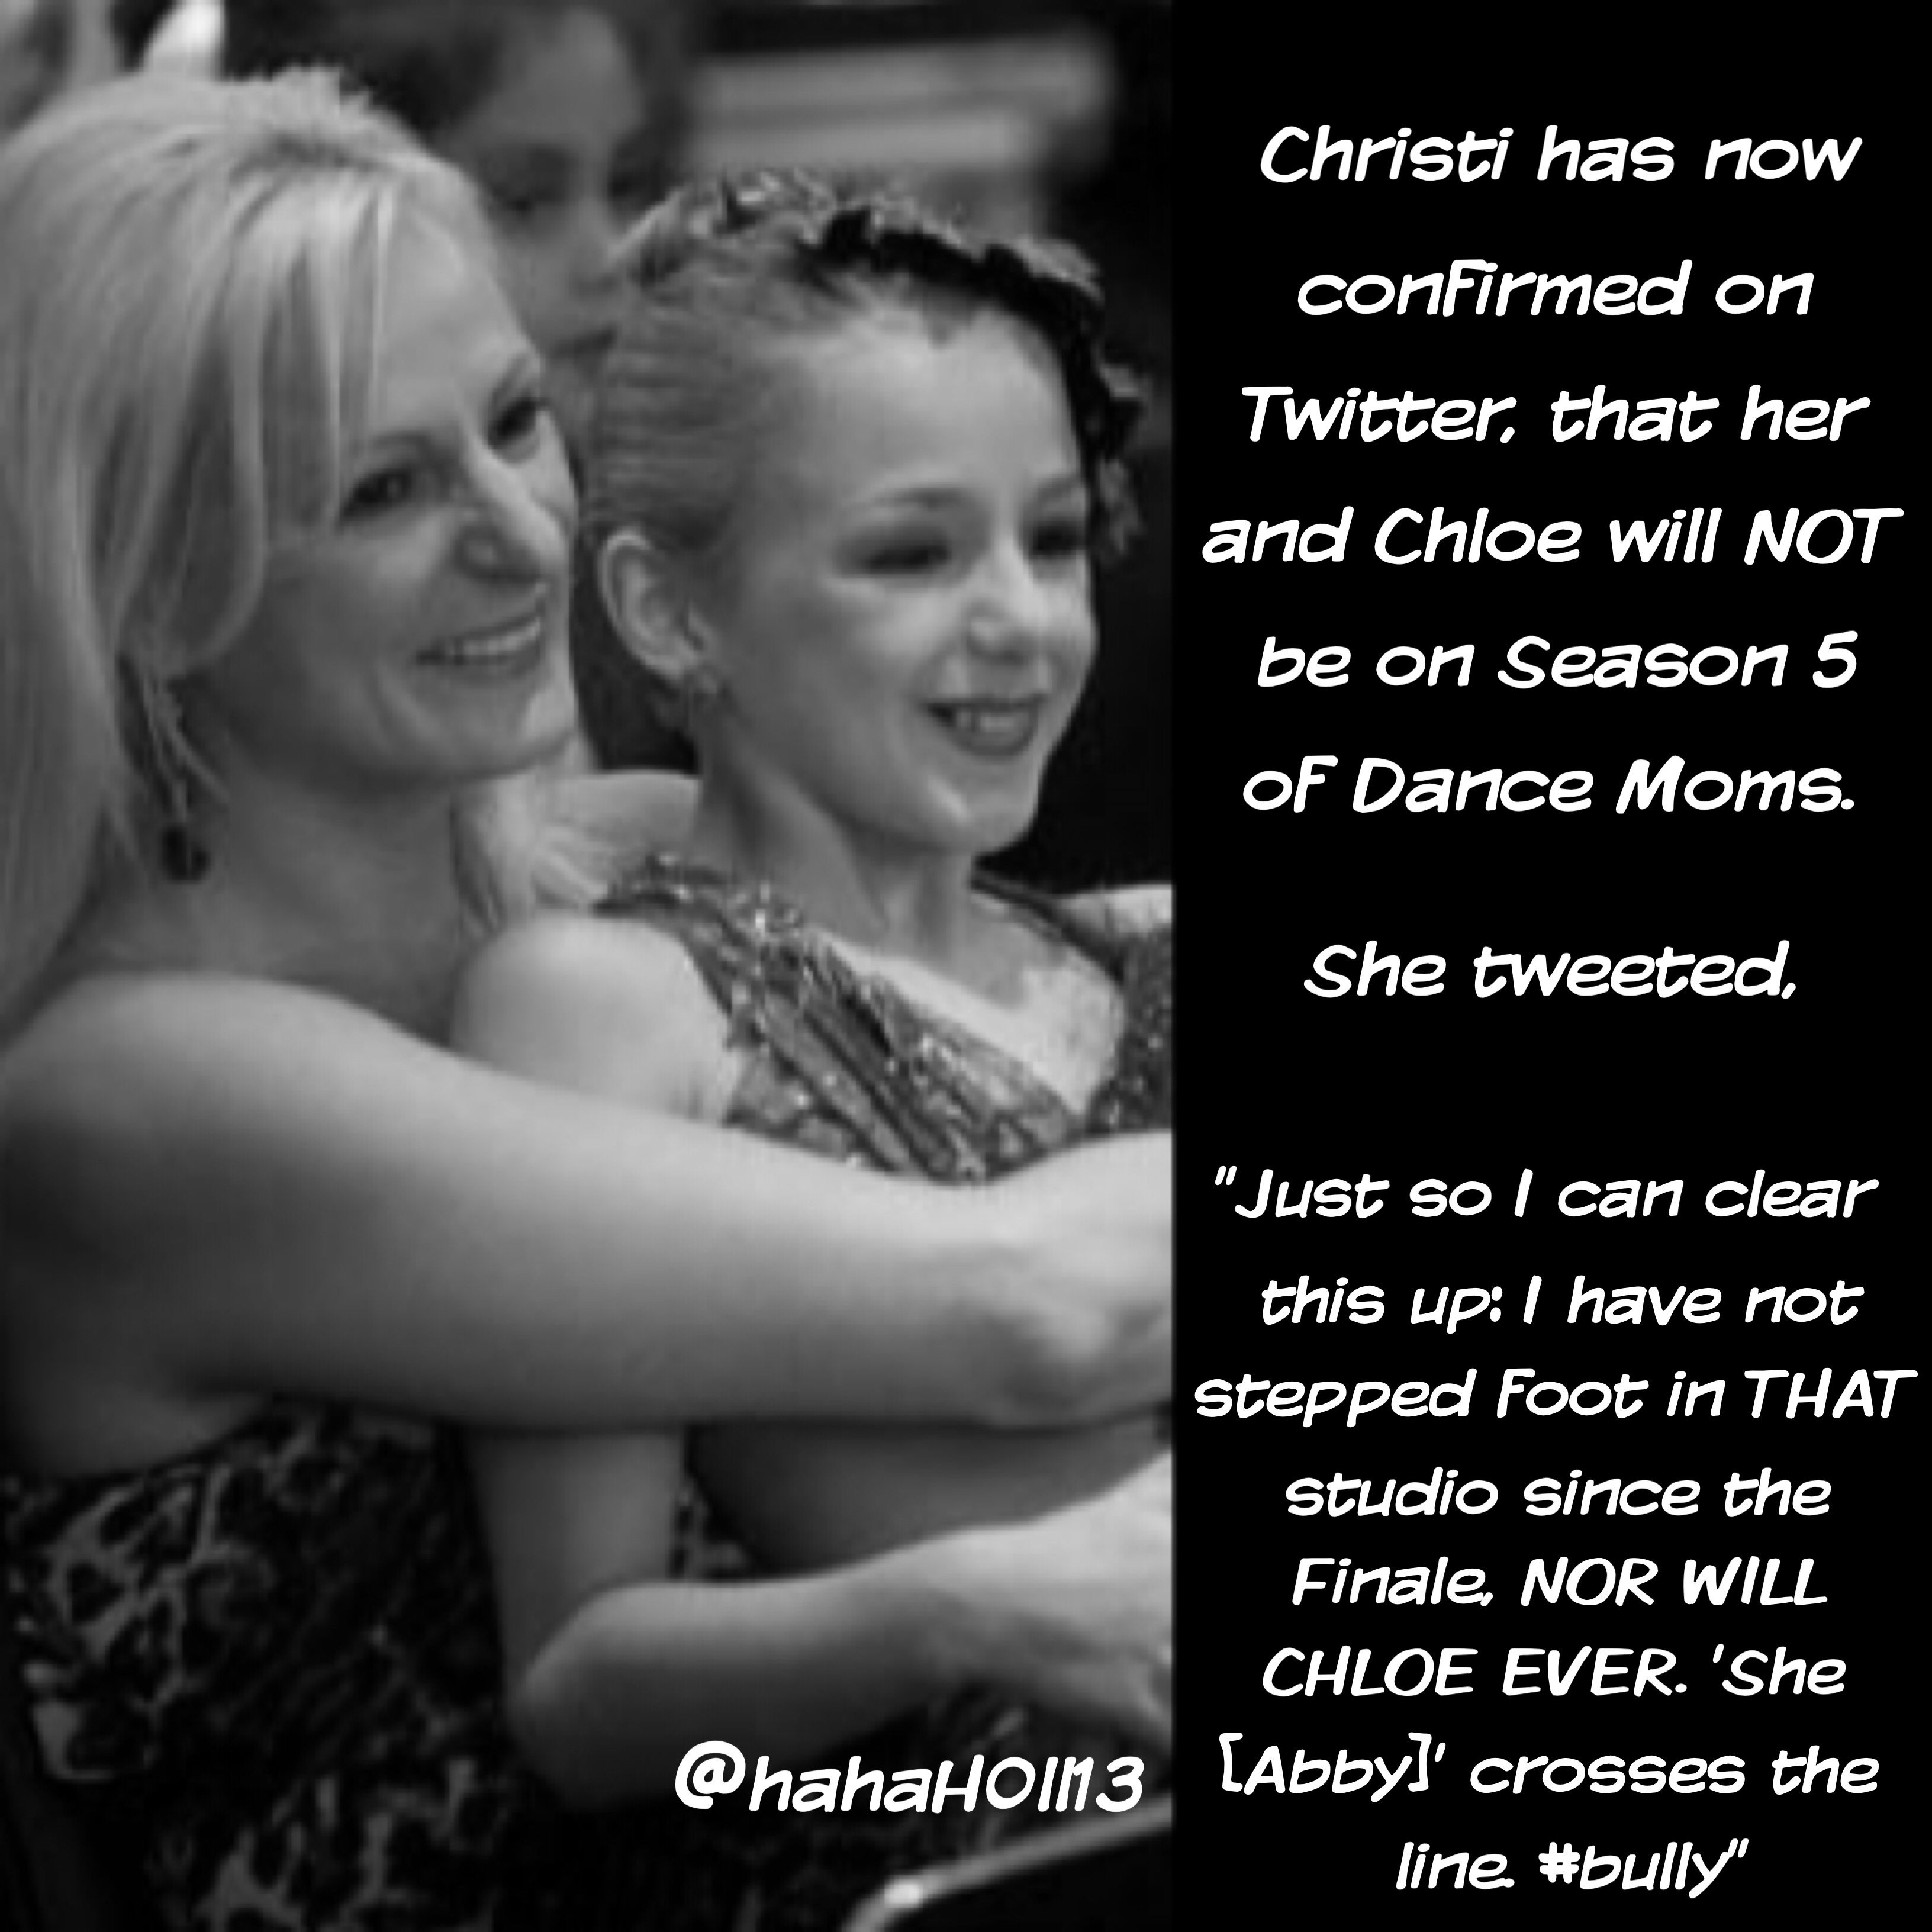 I am devastated that she will not be on it because I loved Chloe and Christi was hilarious and lovely but I am glad that Chloe can be a happy dancer and word is that she is looking/may have found a new studio. Good on her.